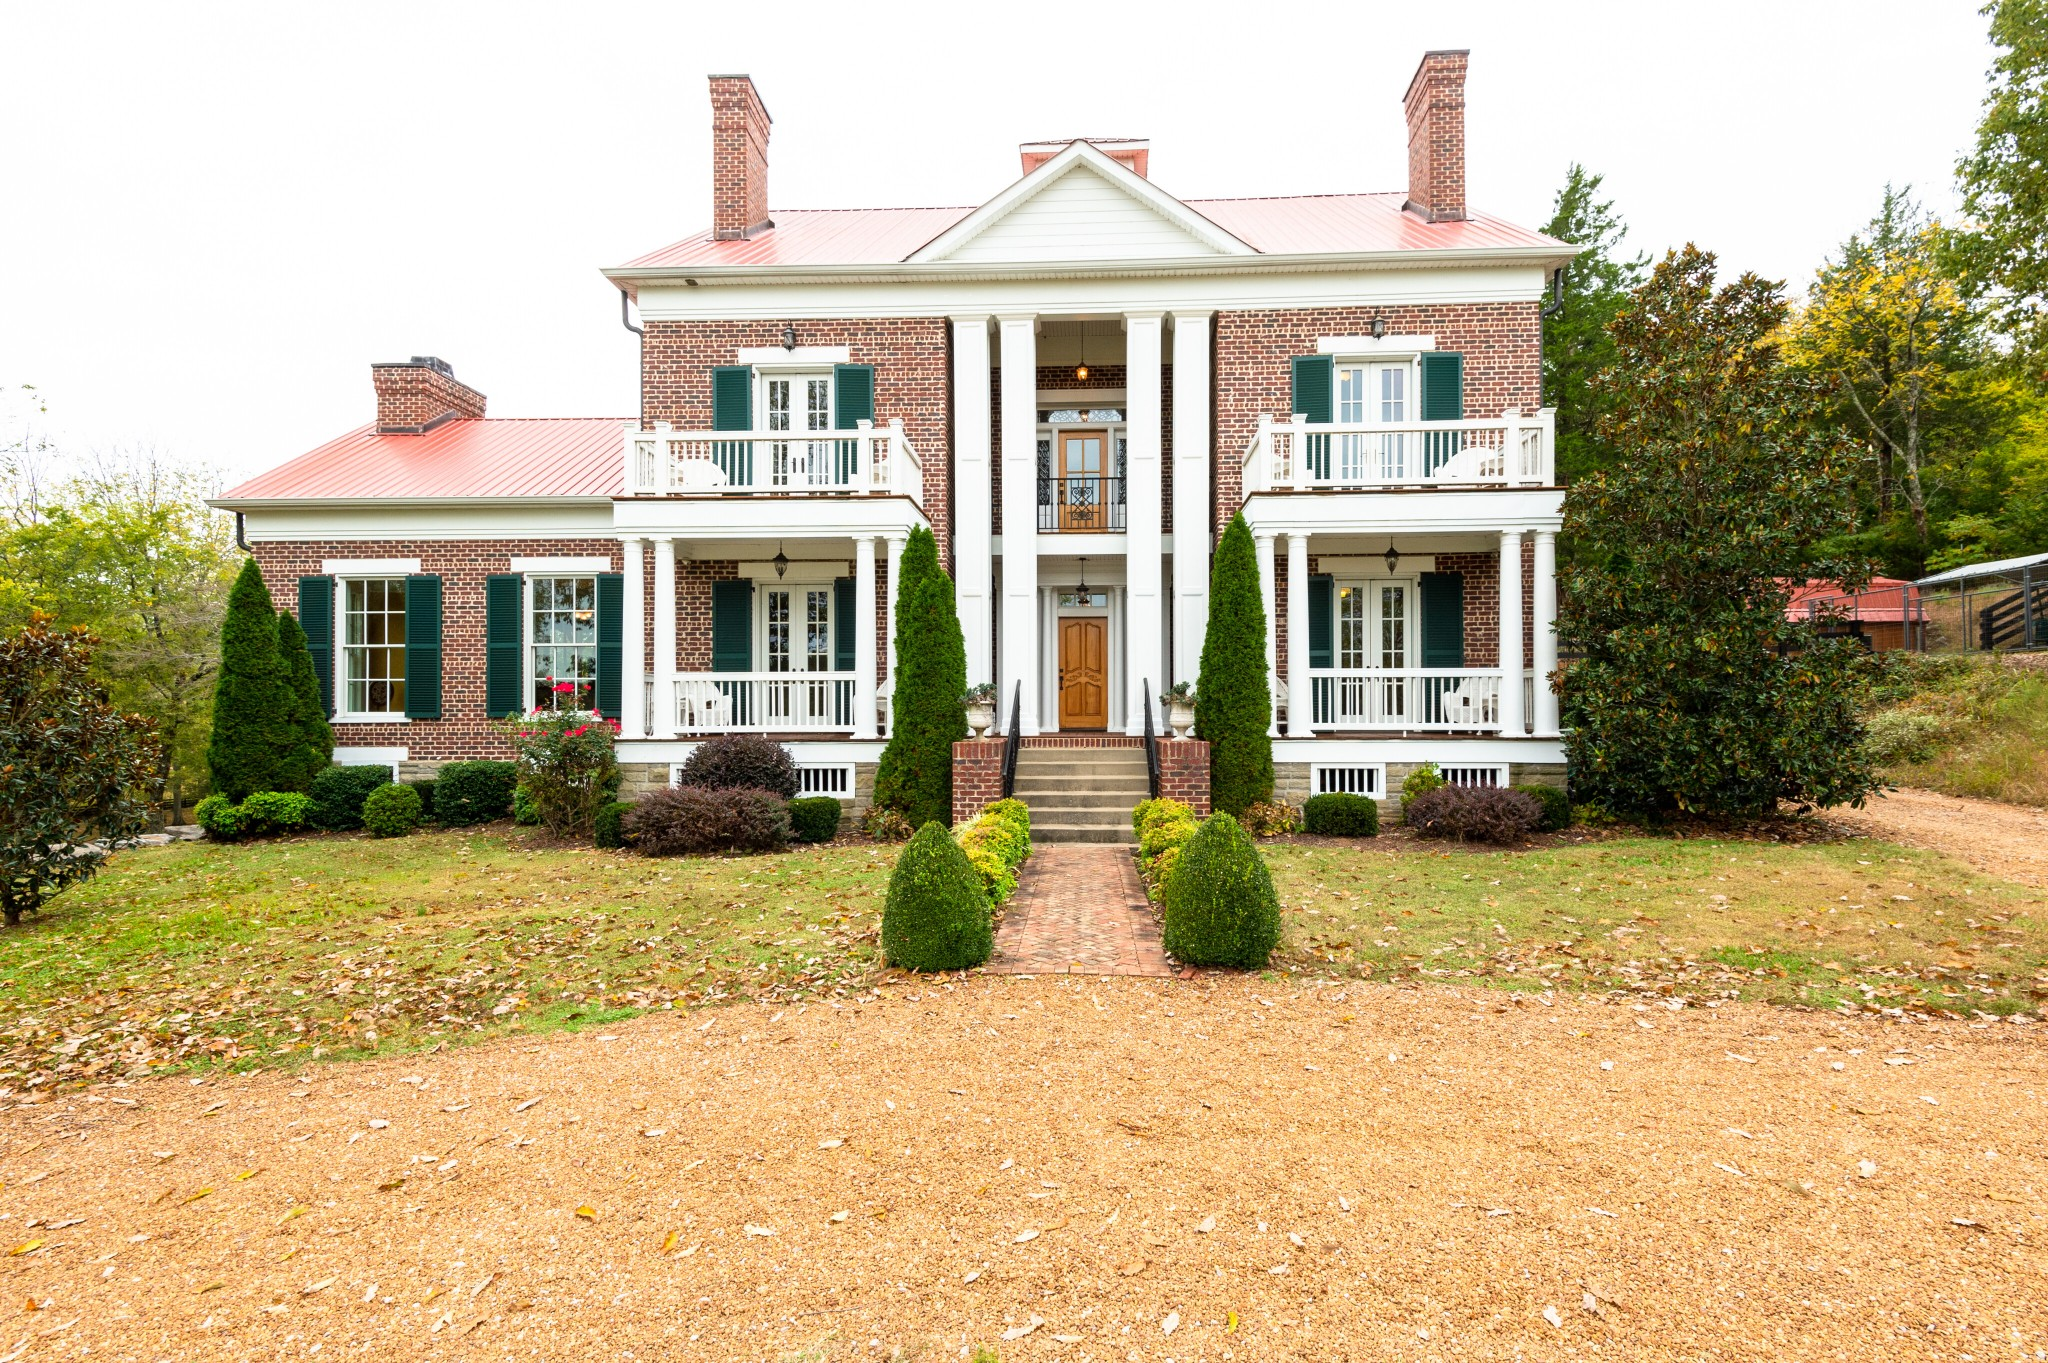 Spacious Greek Revival masterpiece perfectly set on 11.37 scenic Williamson Co acres. Real wide-plank hickory floors. 13 sitting porches! 1850s log home incorporated as kitchen with fireplace, brick floors & solid custom cherry cabinetry. Luxurious owner's suite has fireplace, private porch & newly renovated bath with custom glass shower. Stocked pond. 3 fenced acres in back. Heated/cooled dog kennel. Barn built to accommodate horse stalls or cars. Entertainment pavilion with storage.